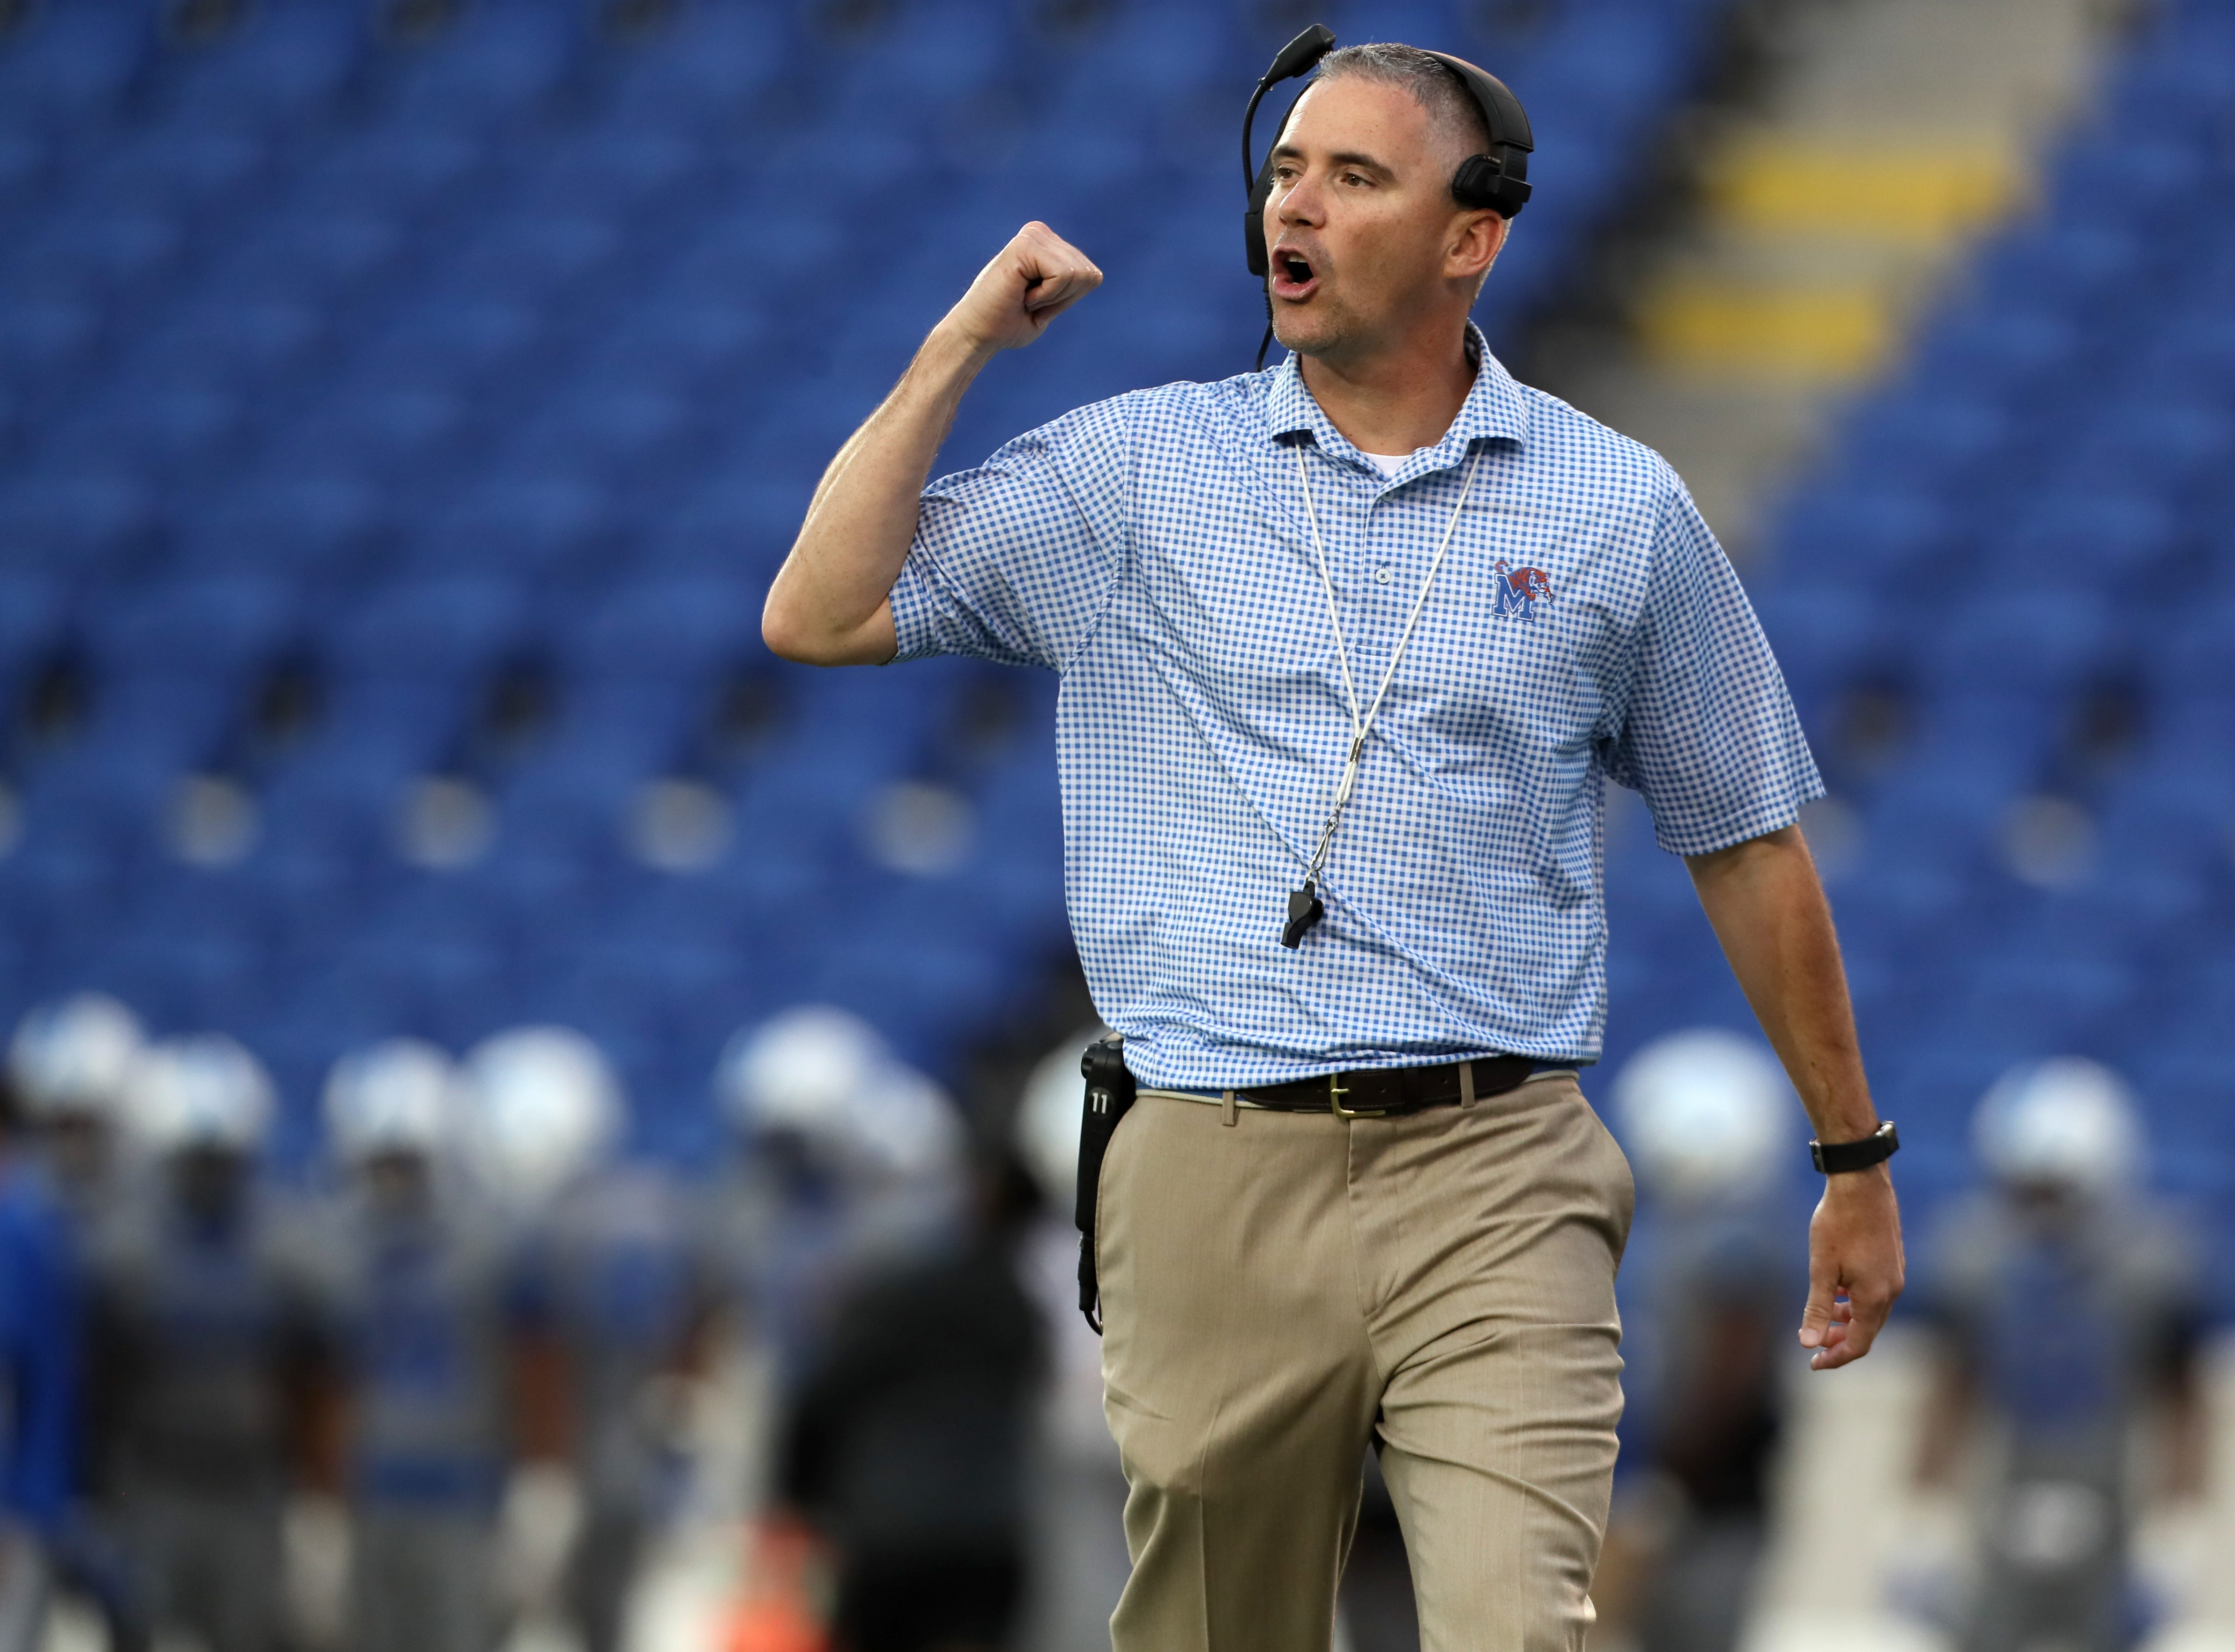 Memphis Tigers Head Coach Mike Norvell talks to his team during their Friday Night Stripes spring game at Liberty Bowl Memorial Stadium on Friday, April 12, 2019.